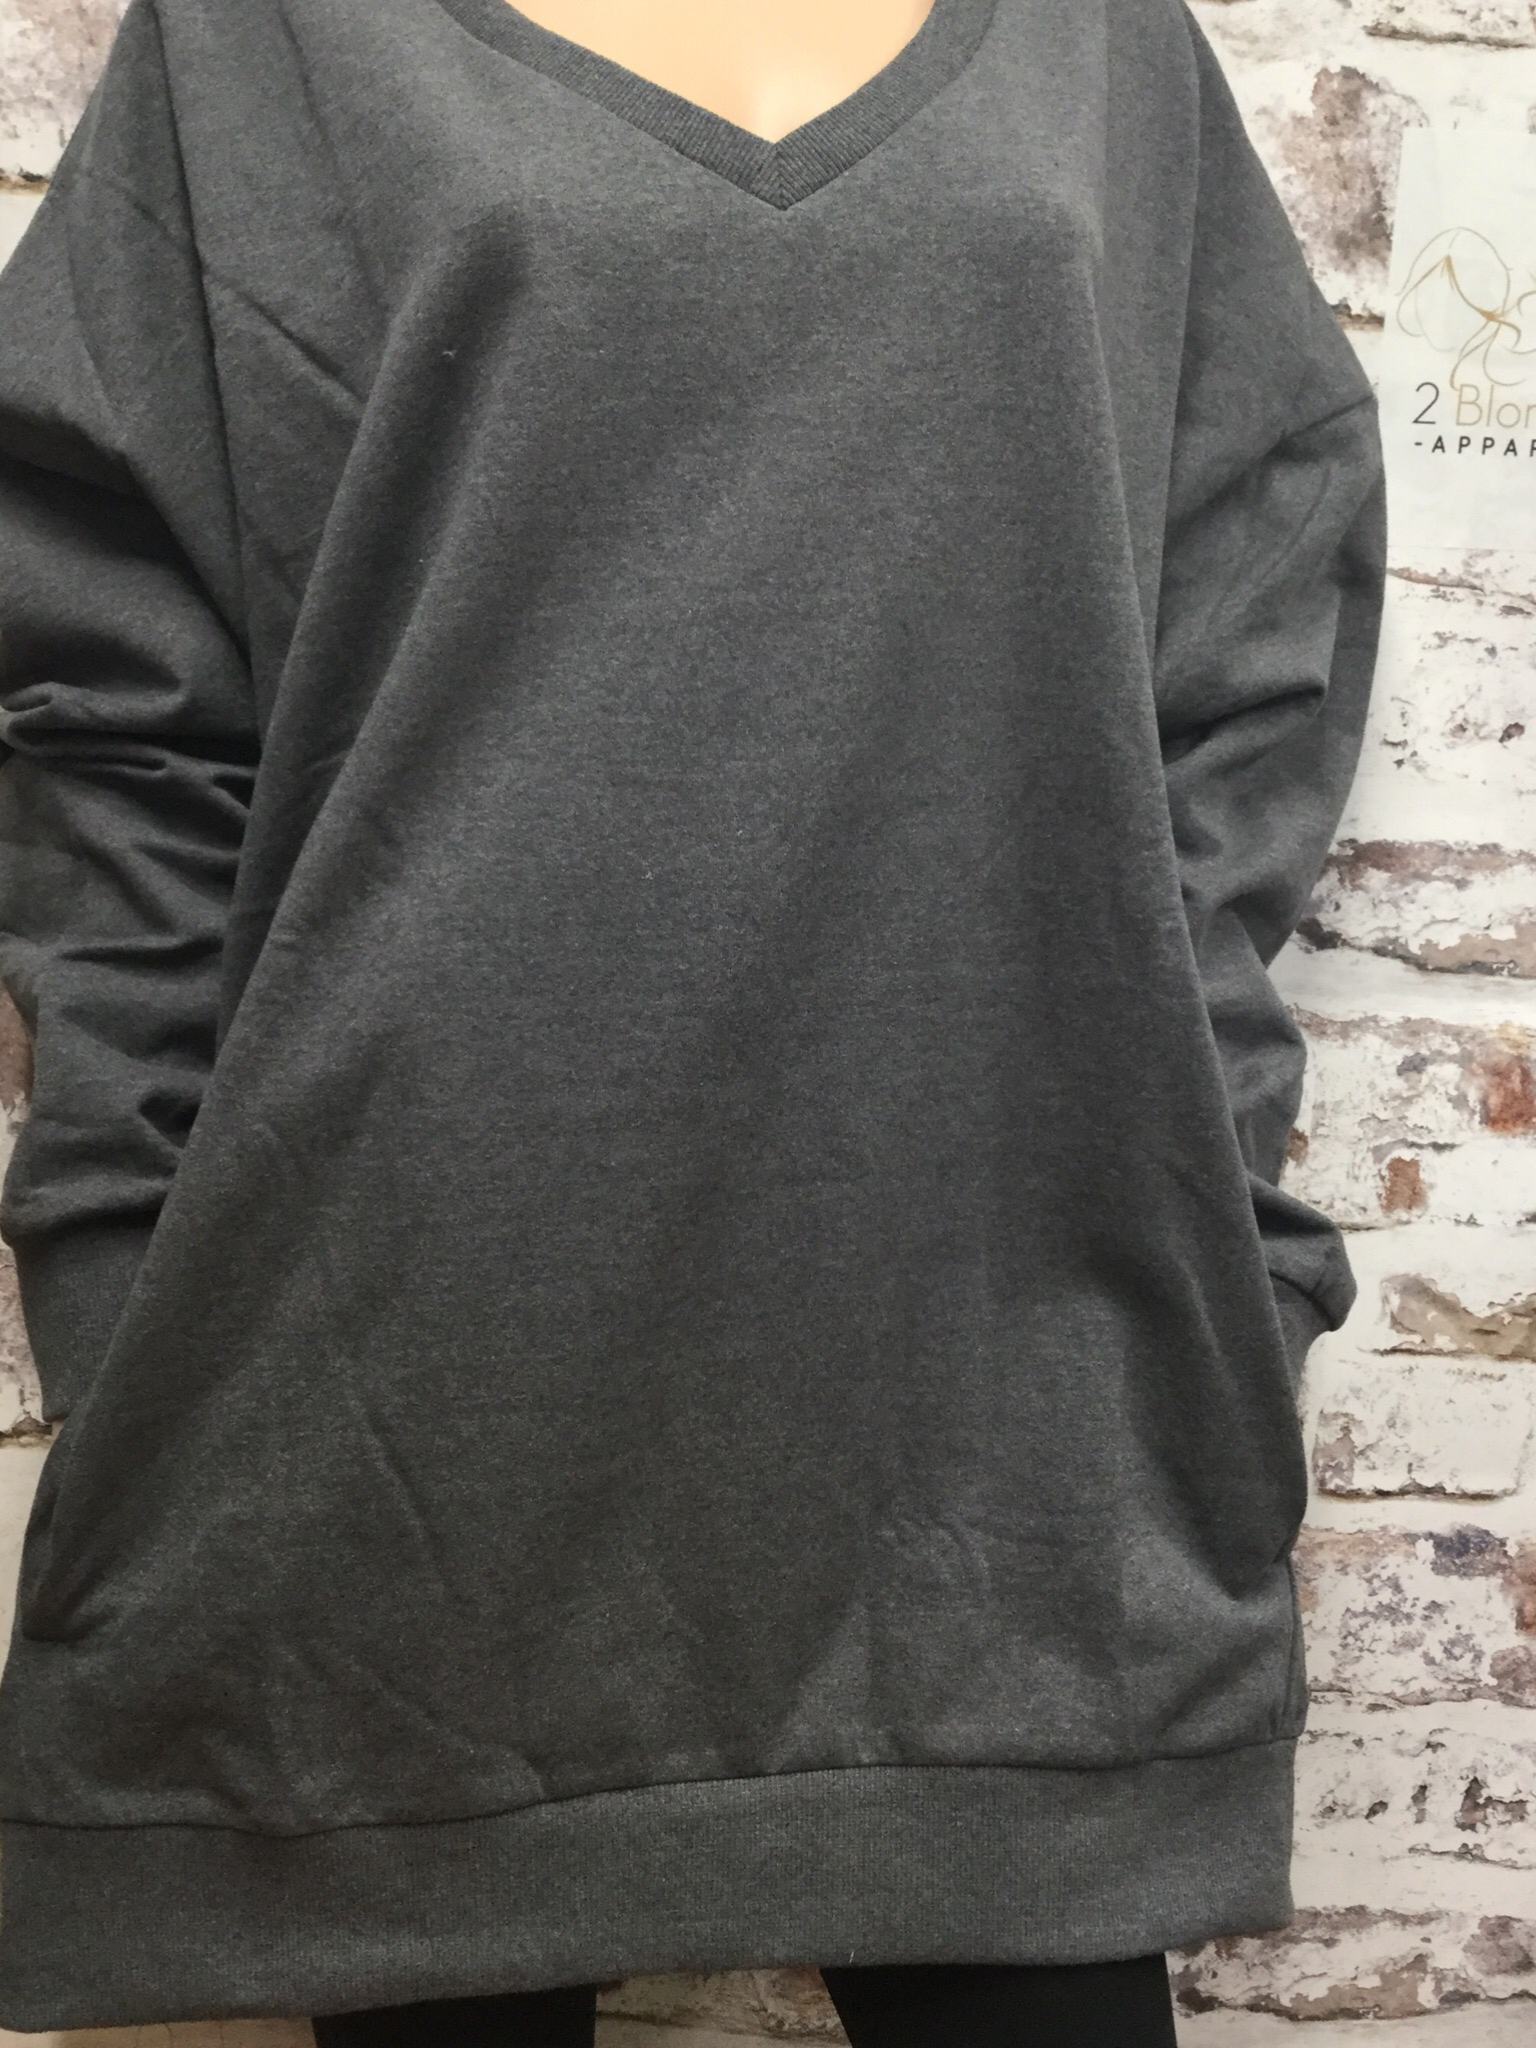 Gray V-Neck Oversized  Sweatshirt w/ Pockets